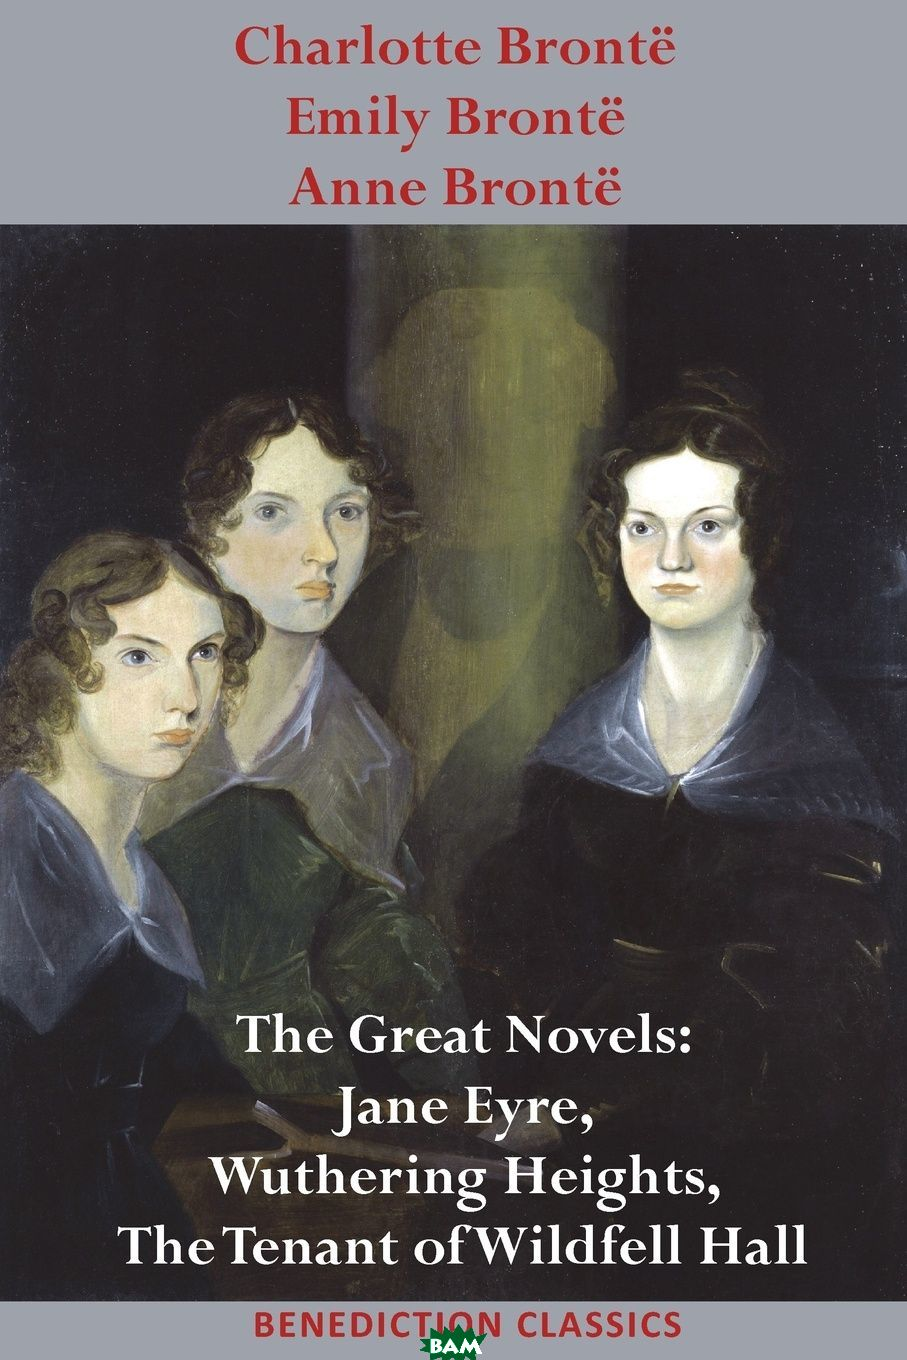 Charlotte Bronte, Emily Bronte and Anne Bronte. The Great Novels: Jane Eyre, Wuthering Heights, and The Tenant of Wildfell Hall